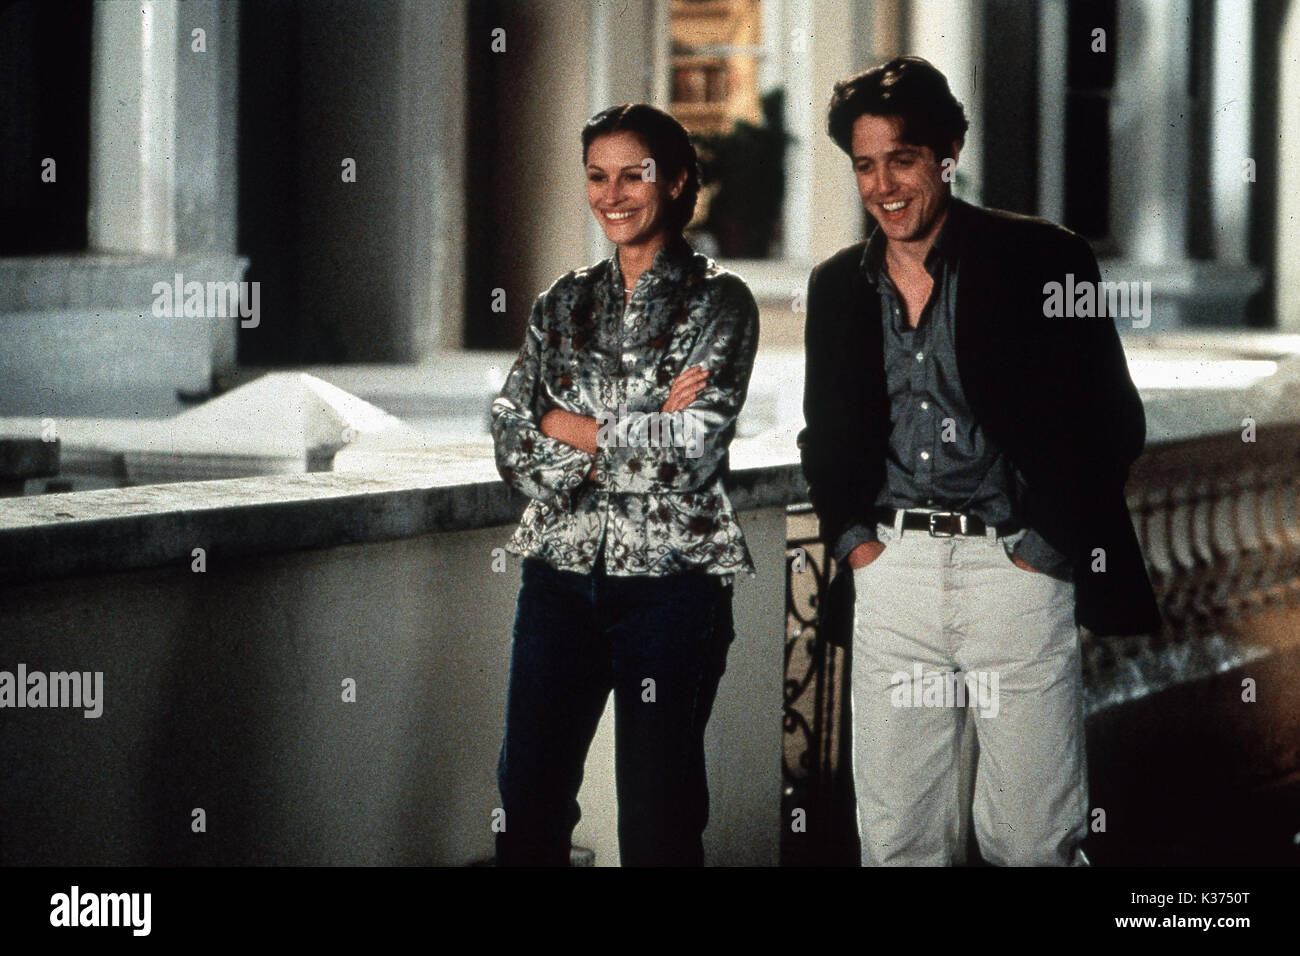 NOTTING HILL JULIA ROBERTS AND HUGH GRANT A WORKING TITLE FILM     Date: 1999 - Stock Image